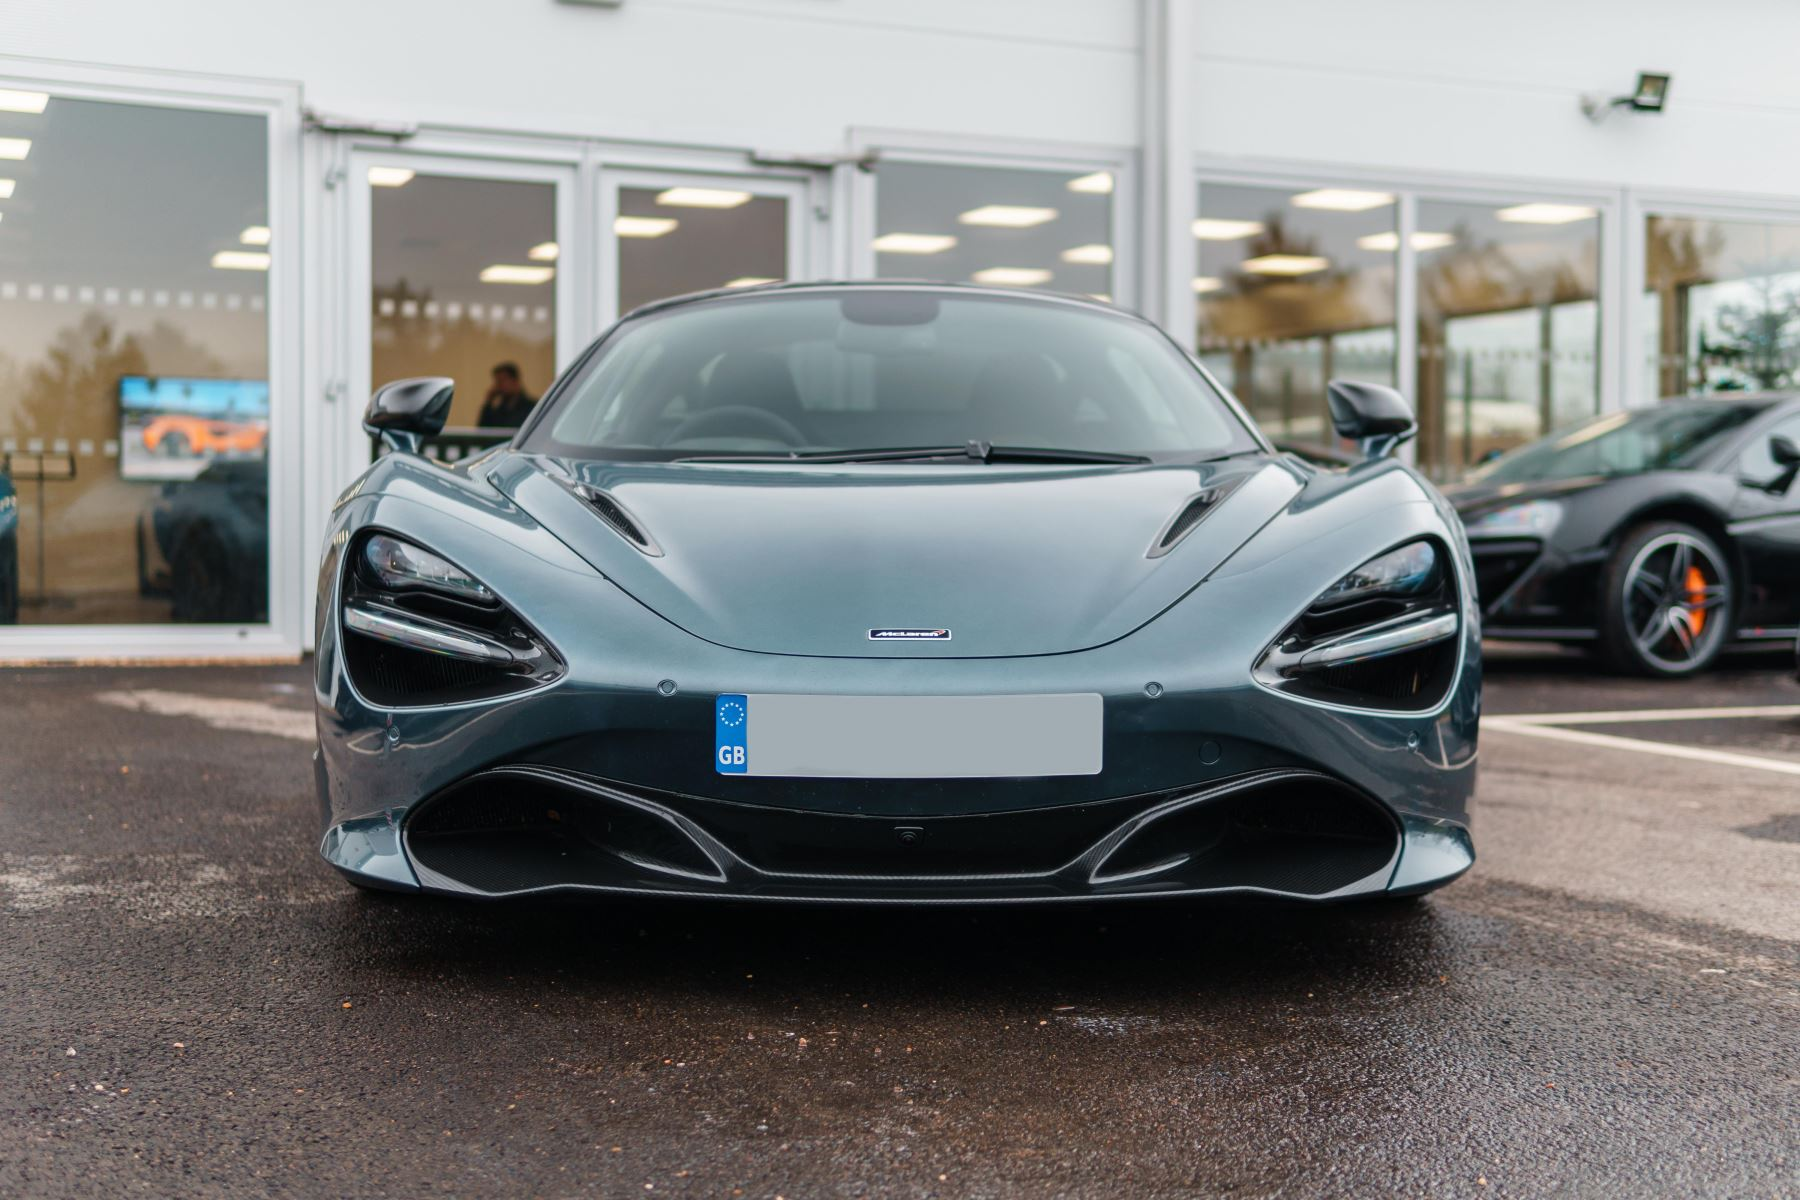 McLaren 720S Performance image 5